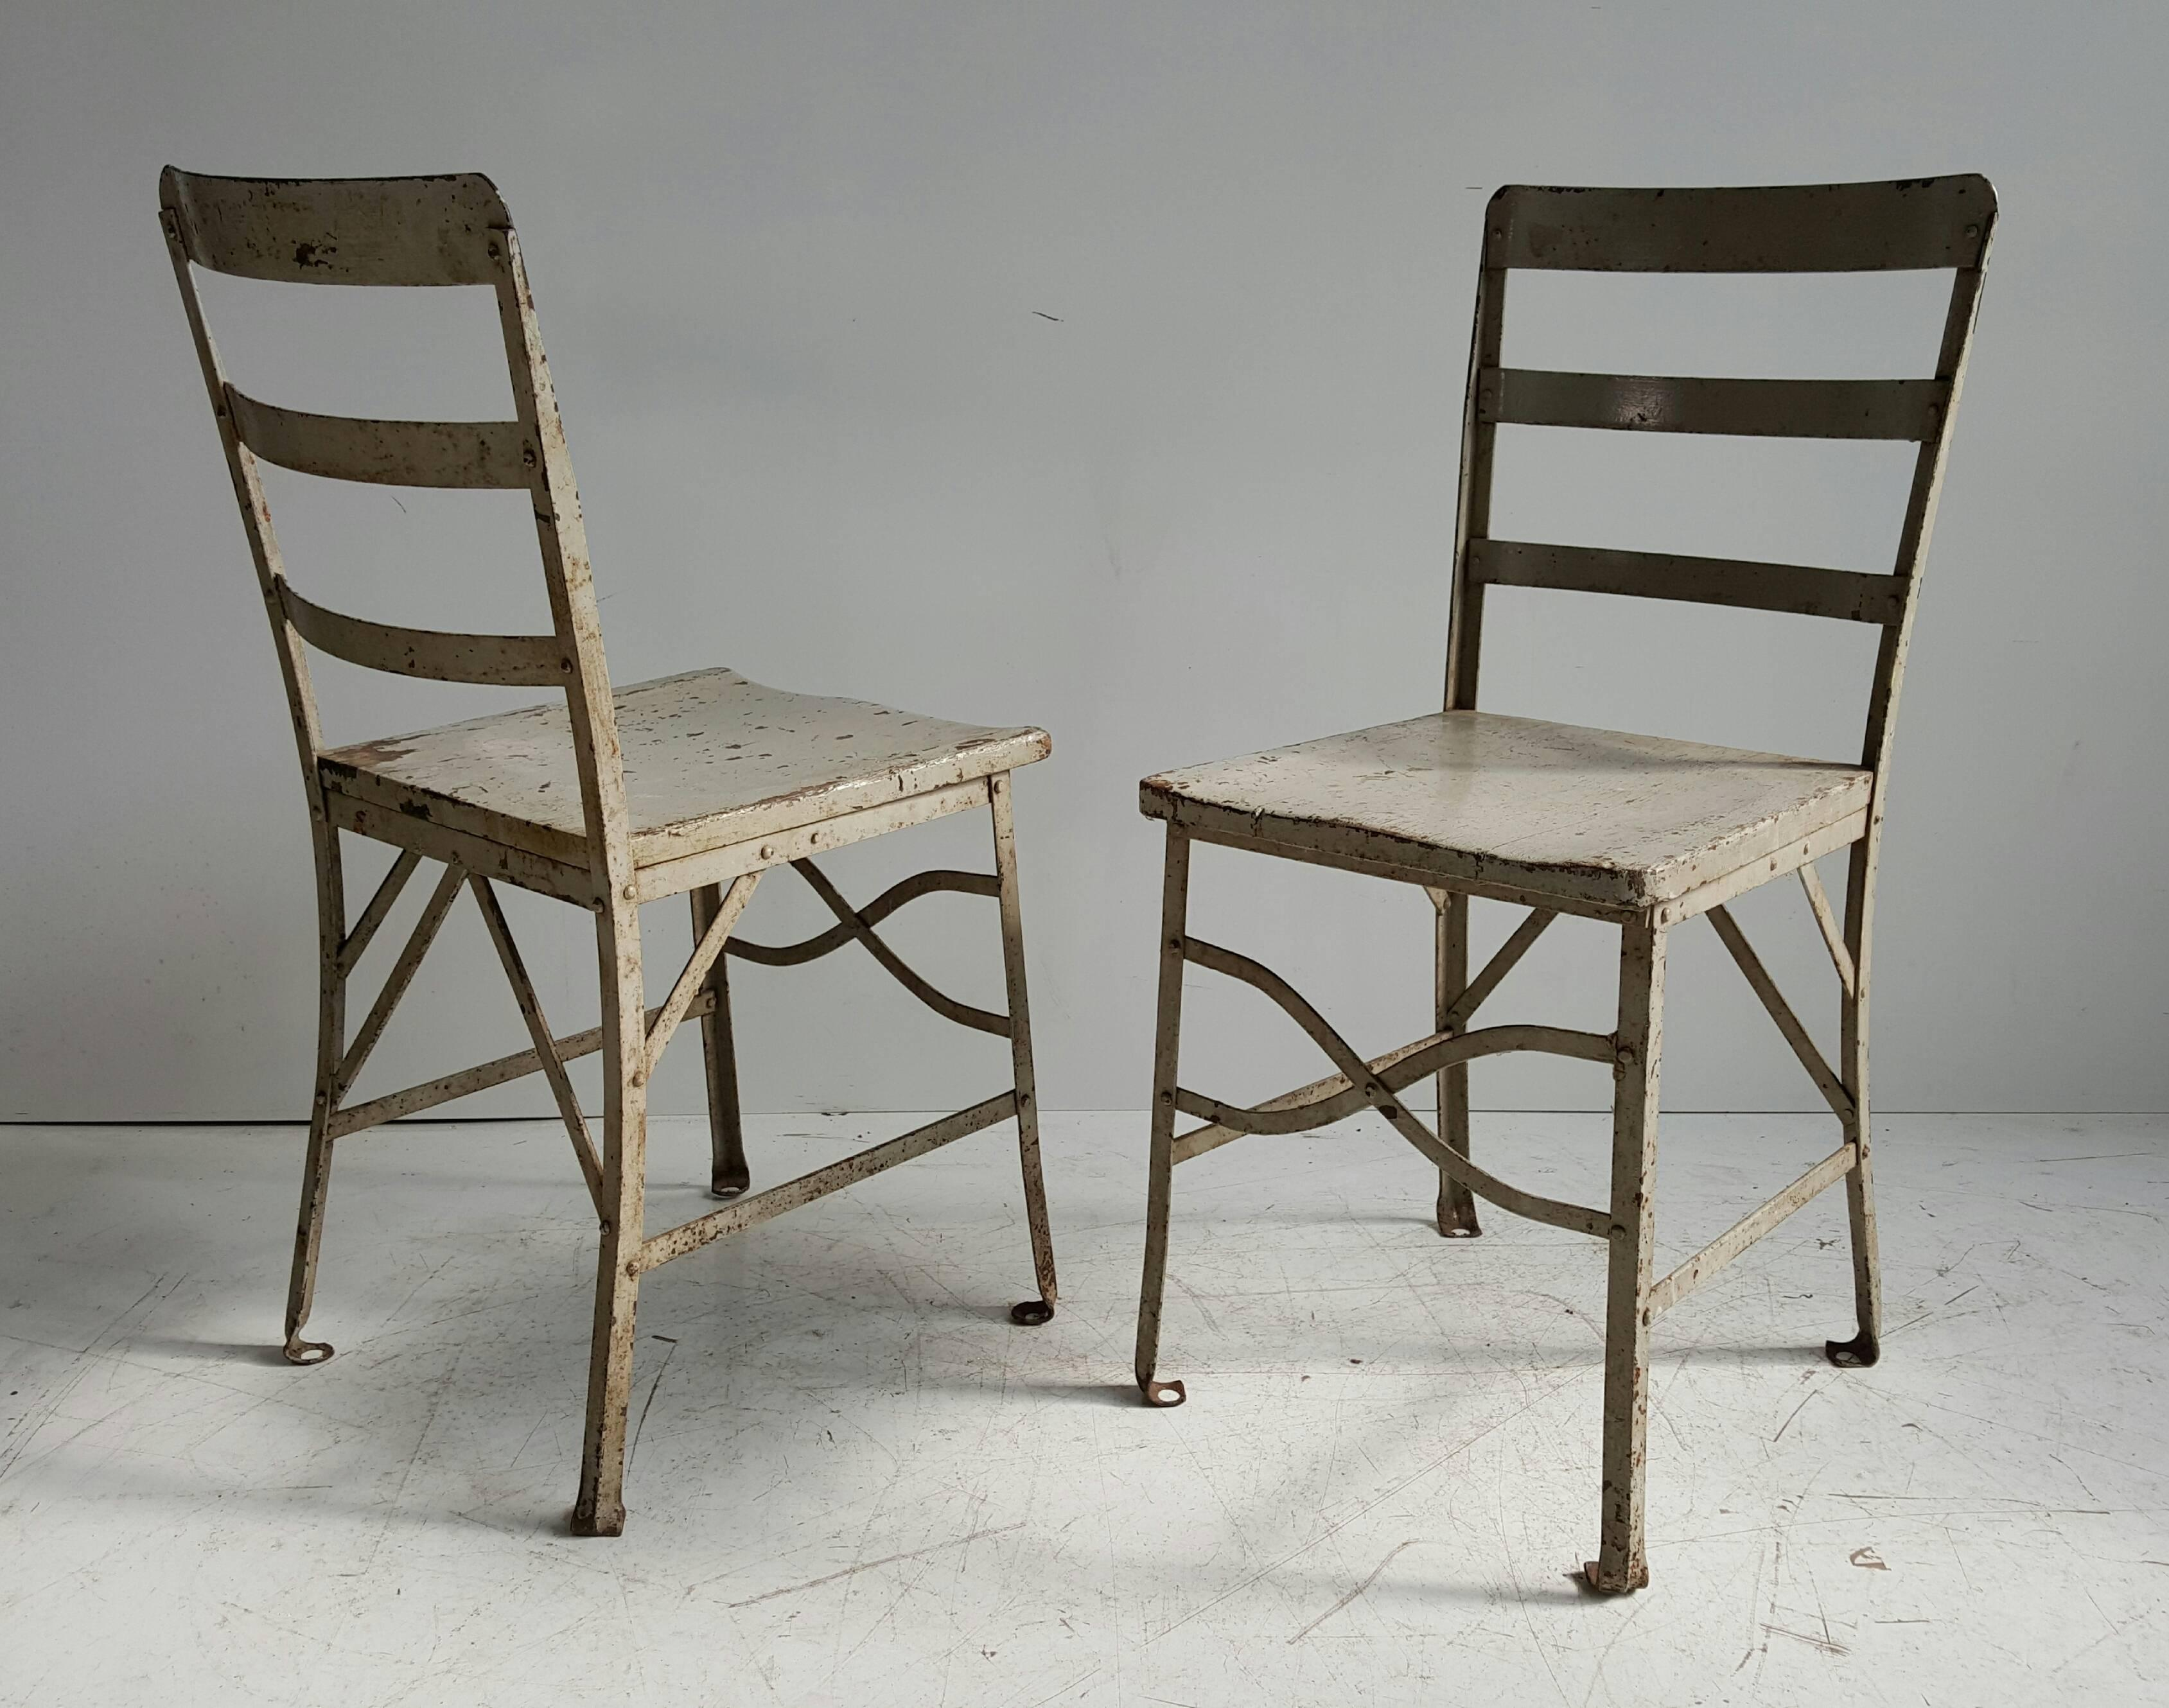 grey painted chairs high chair for elderly american modernist old factory toledo industrial pair of paint attributed to metal